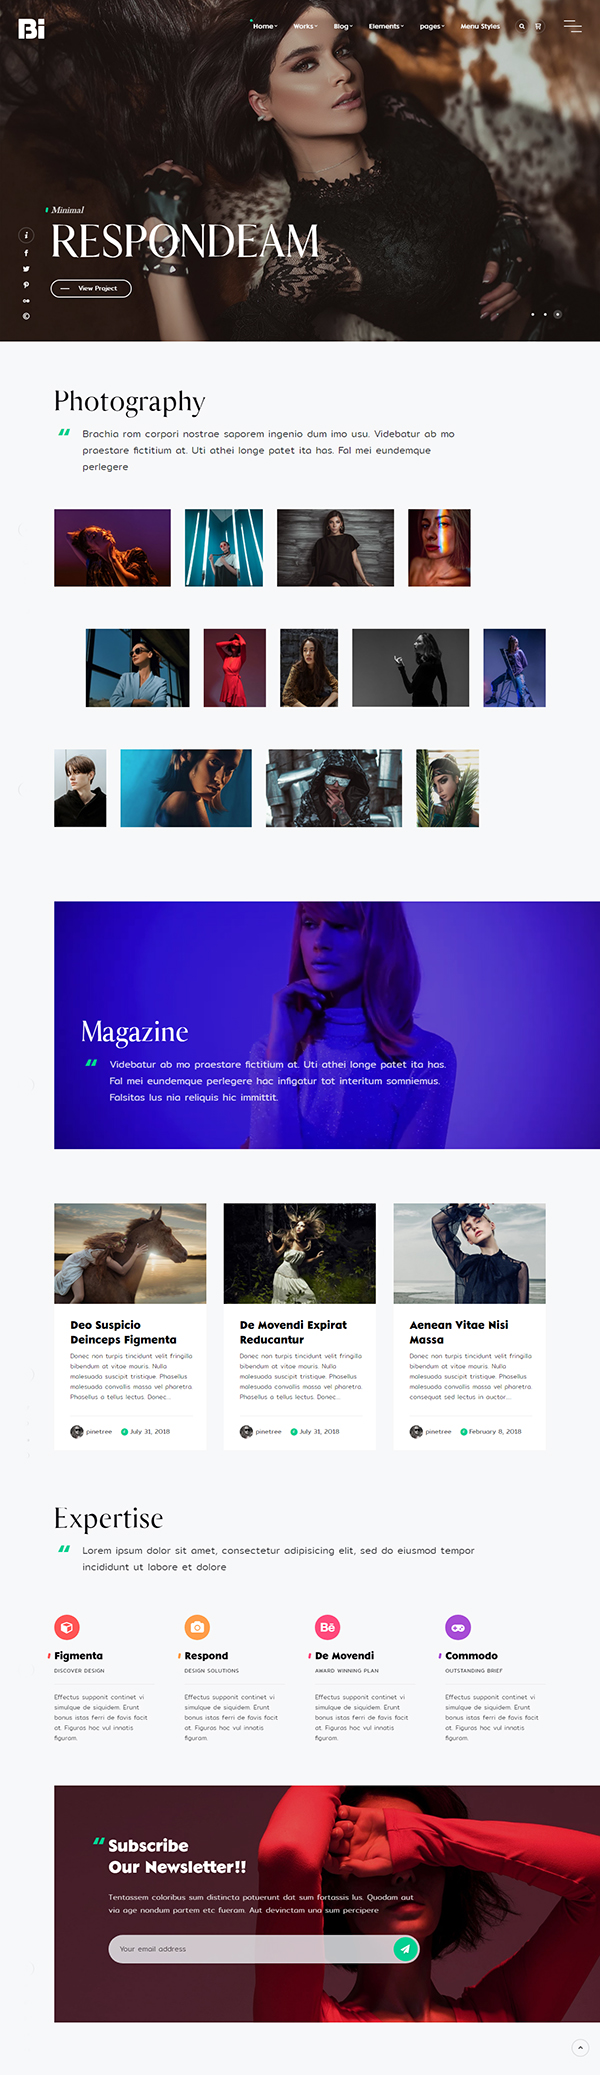 TheBi - Photography WordPress Theme